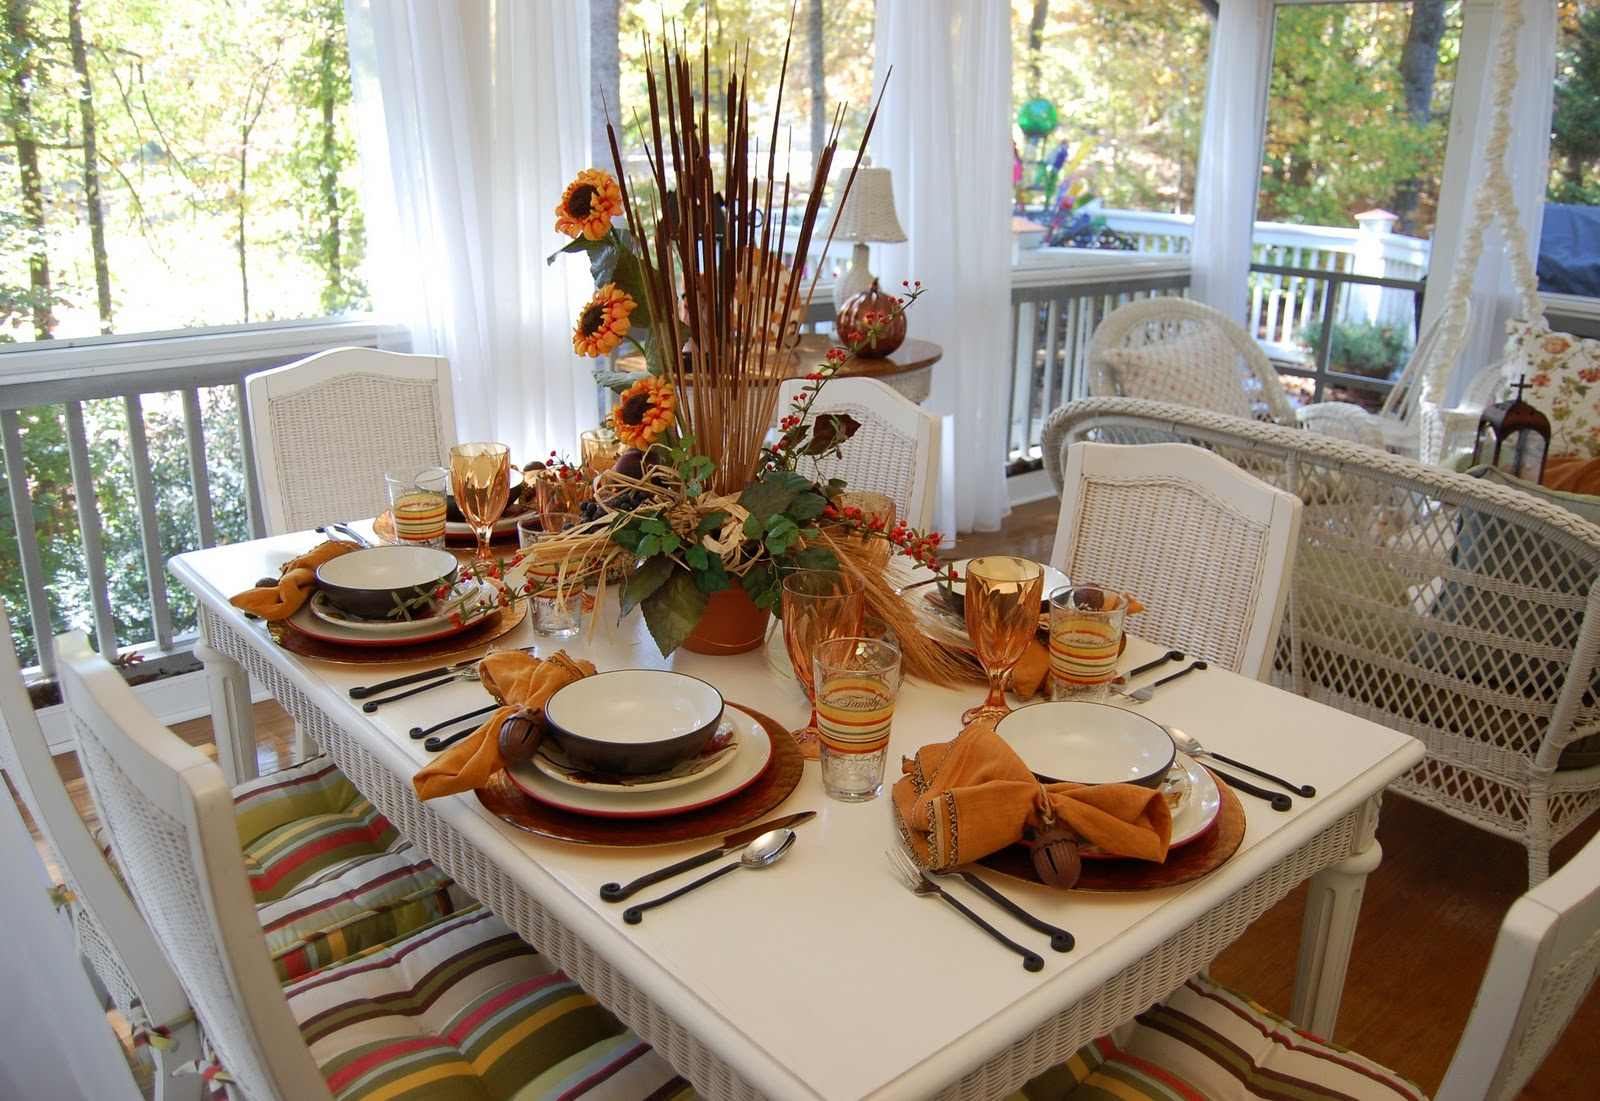 Fall dining on the porch celebrating the russet shades of